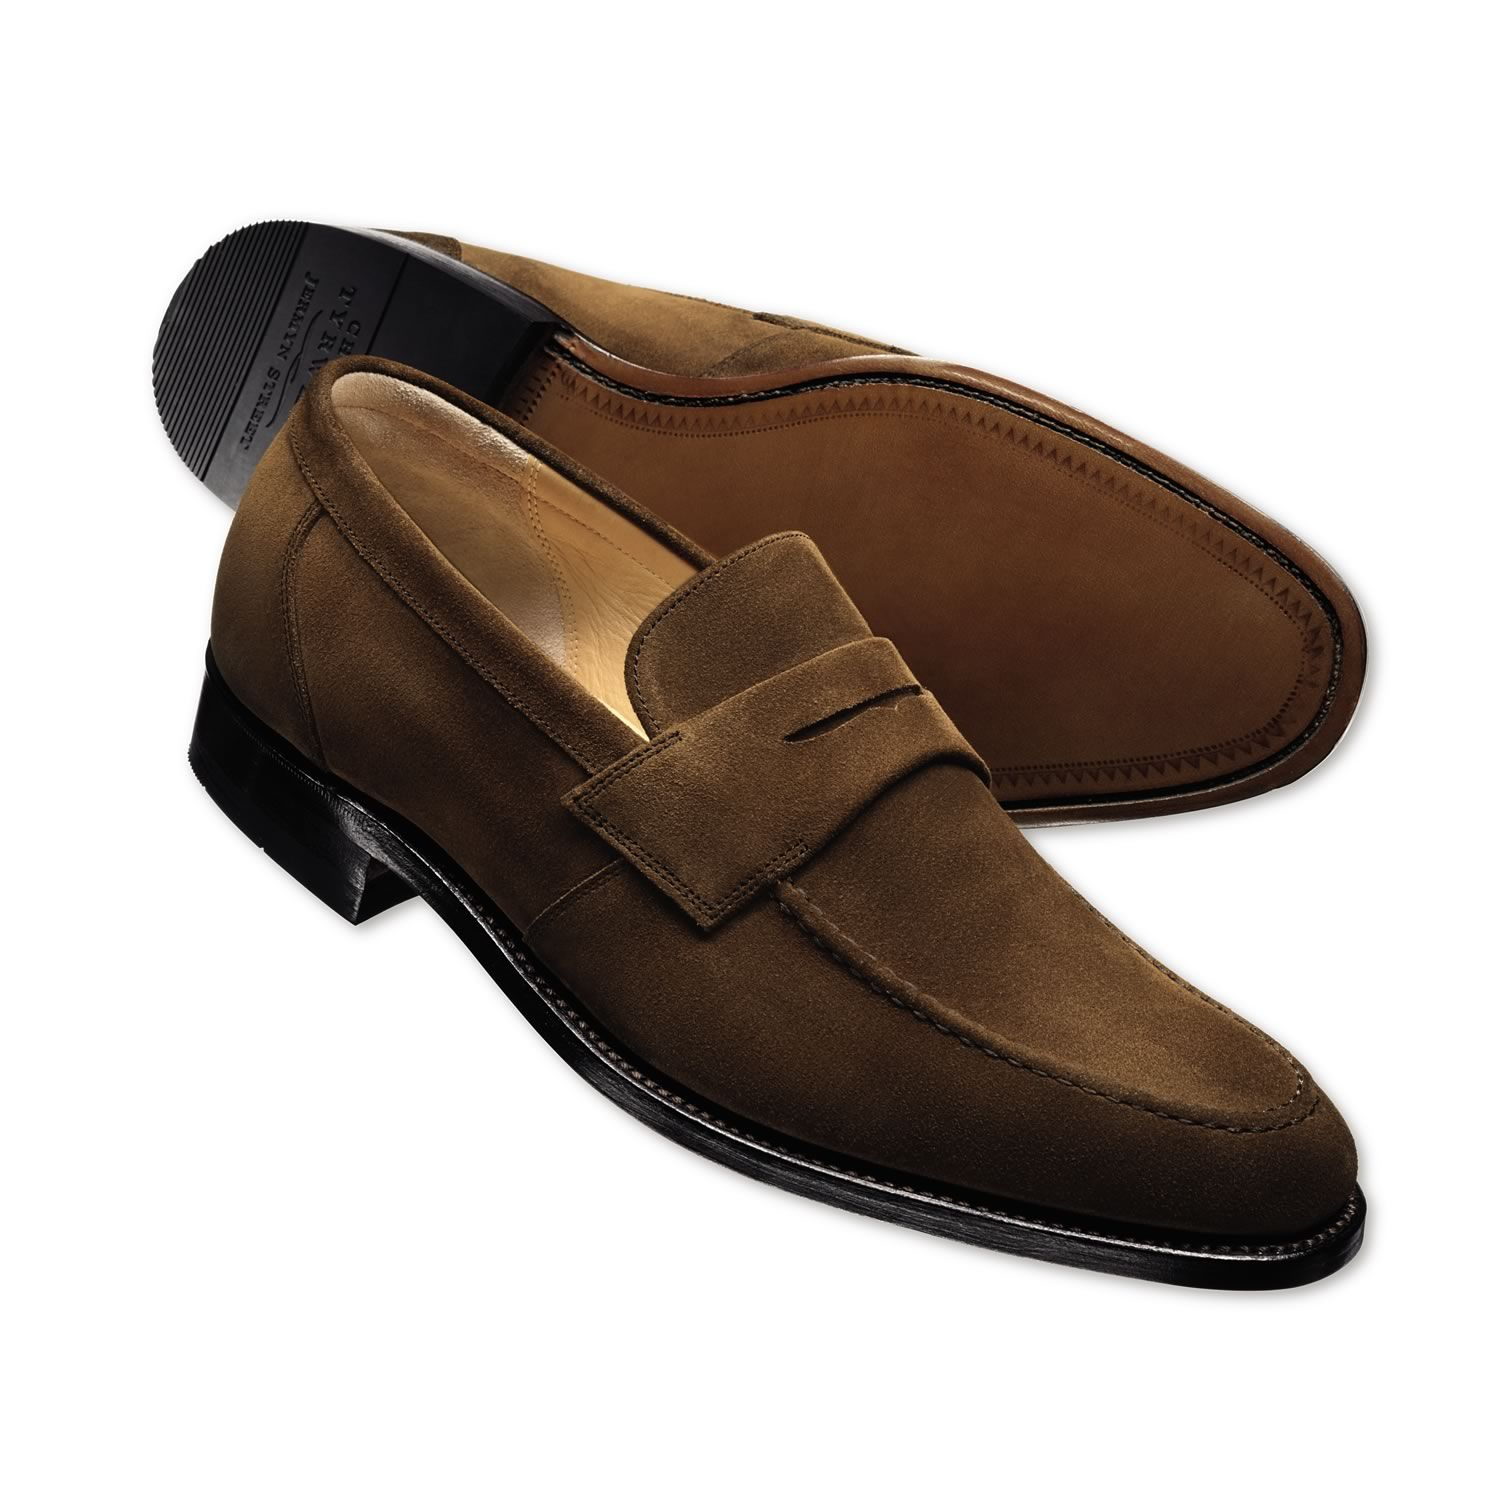 Discover the latest in men's loafers with ASOS. Slip on shoes, penny loafers & suede loafers are perfect for casual day-to-day footwear. Shop now at ASOS. your browser is not supported. ASOS DESIGN vegan friendly loafers in brown faux suede with snaffle detail. £